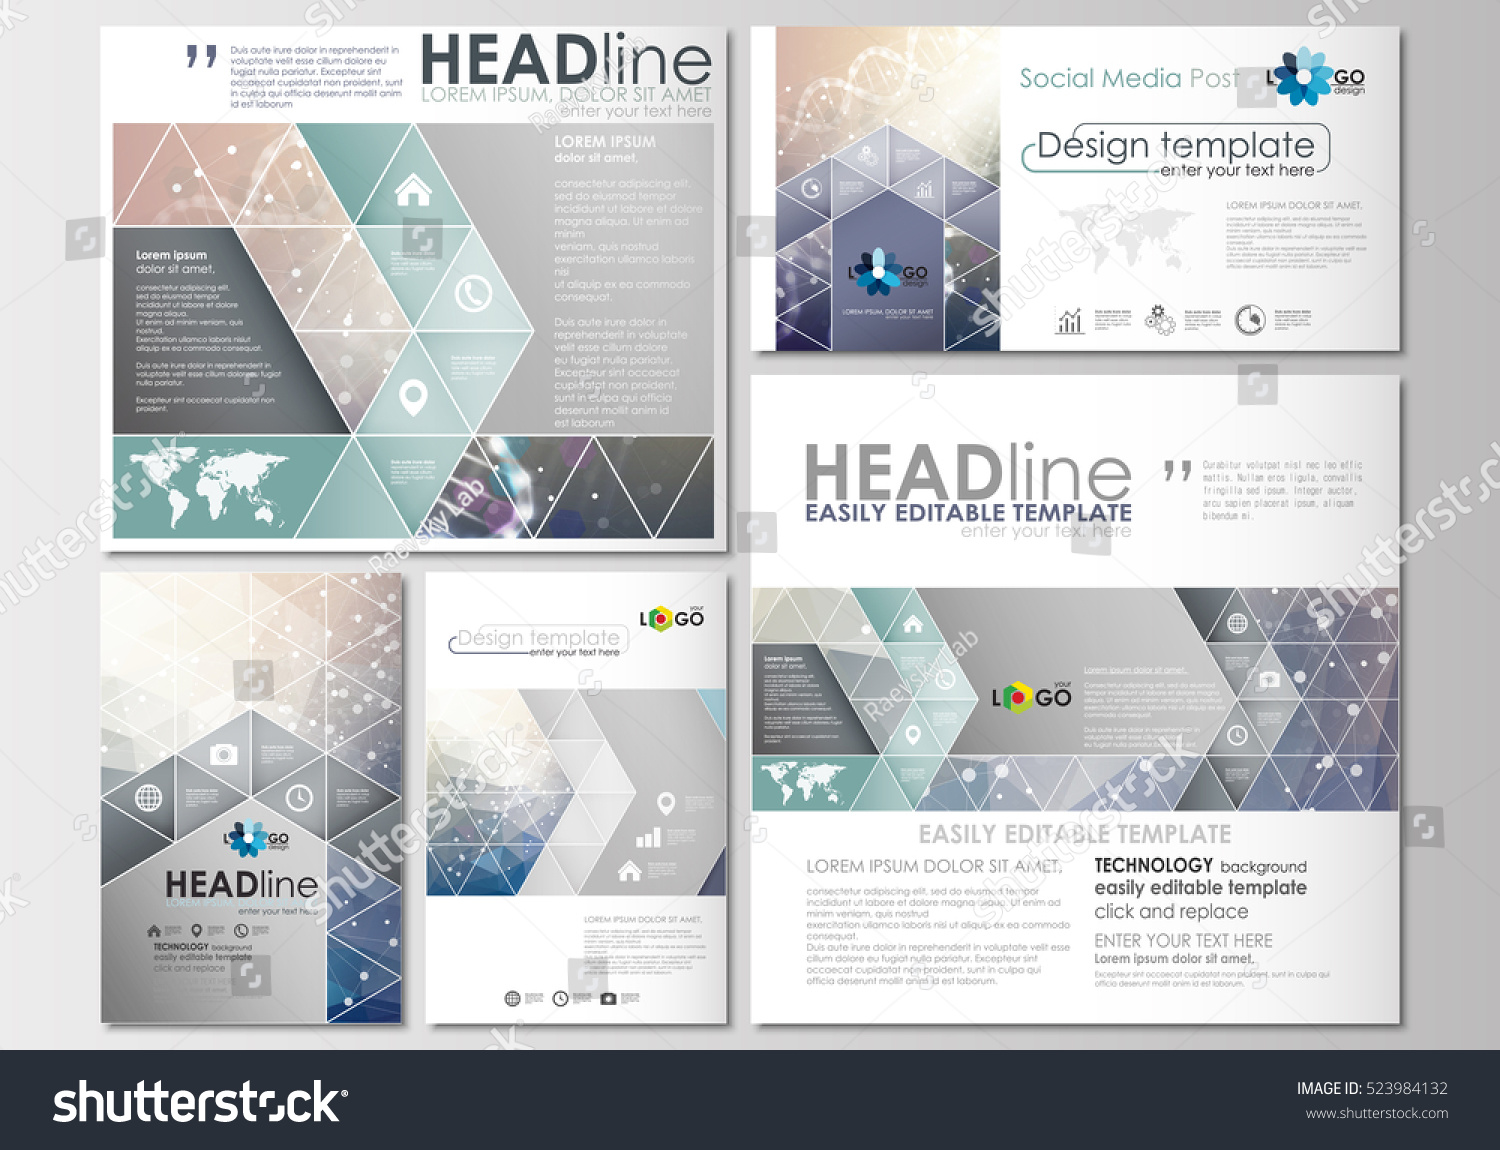 Social media posts set. Business templates. Cover design template, easy editable, flat layouts in popular formats. DNA molecule structure on blue background. Scientific research, medical technology